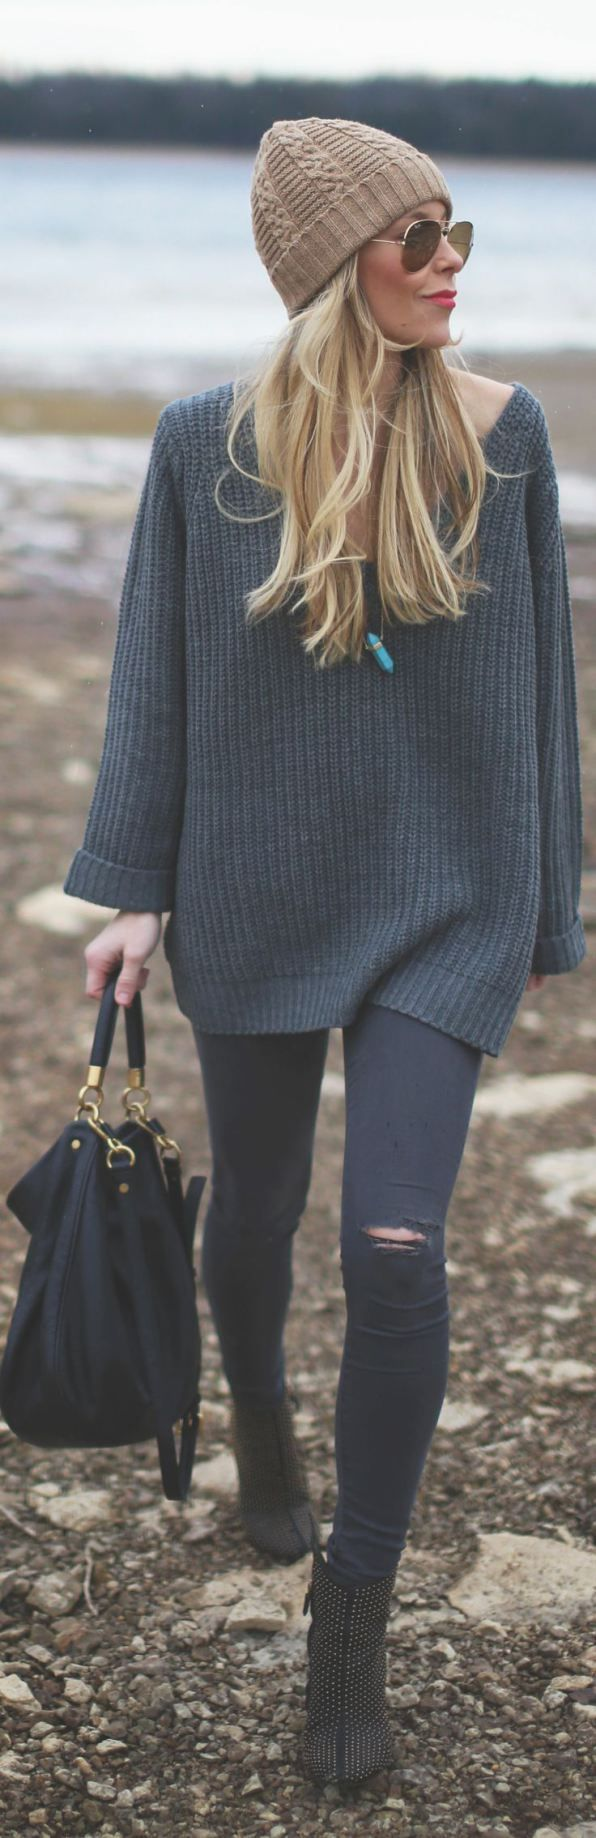 beanie + over-sized sweater + ripped jeans + oversized black bag + aviators = perfection: